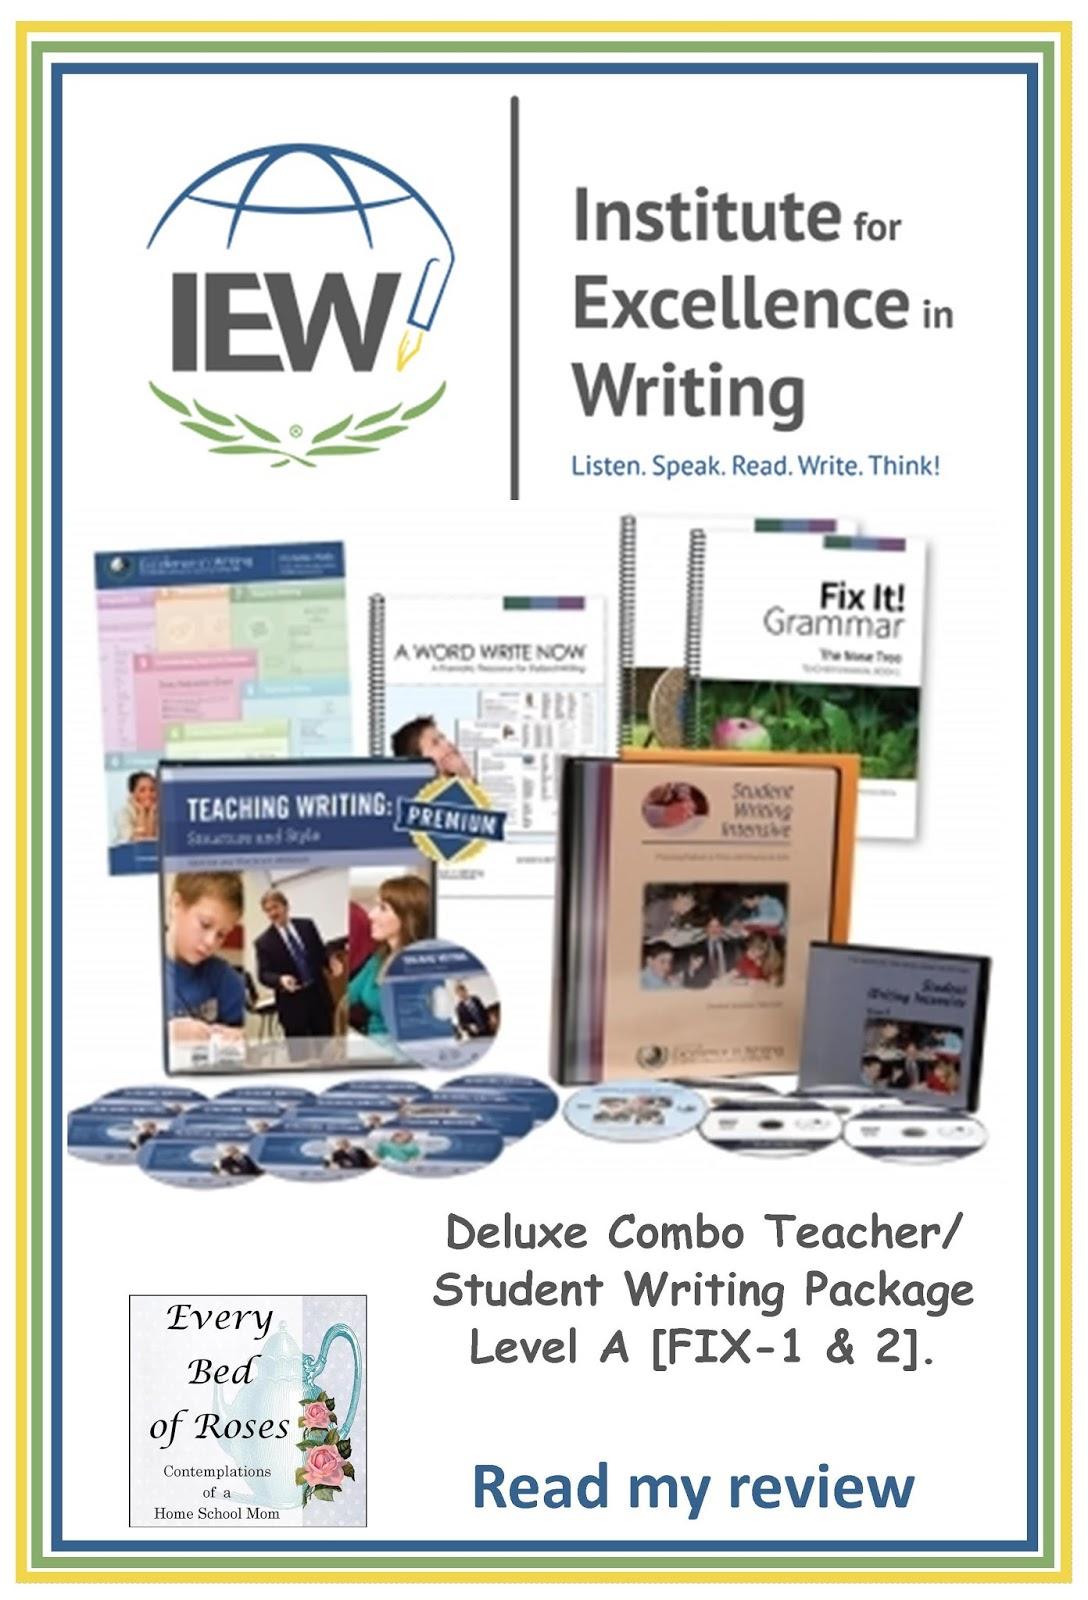 institute of excellence in writing Institute for excellence in writing- teaching writing: structure and style dvds by andrew pudewa feeling empowered as a parent/teacher many of my blog readers have been asking me to write.